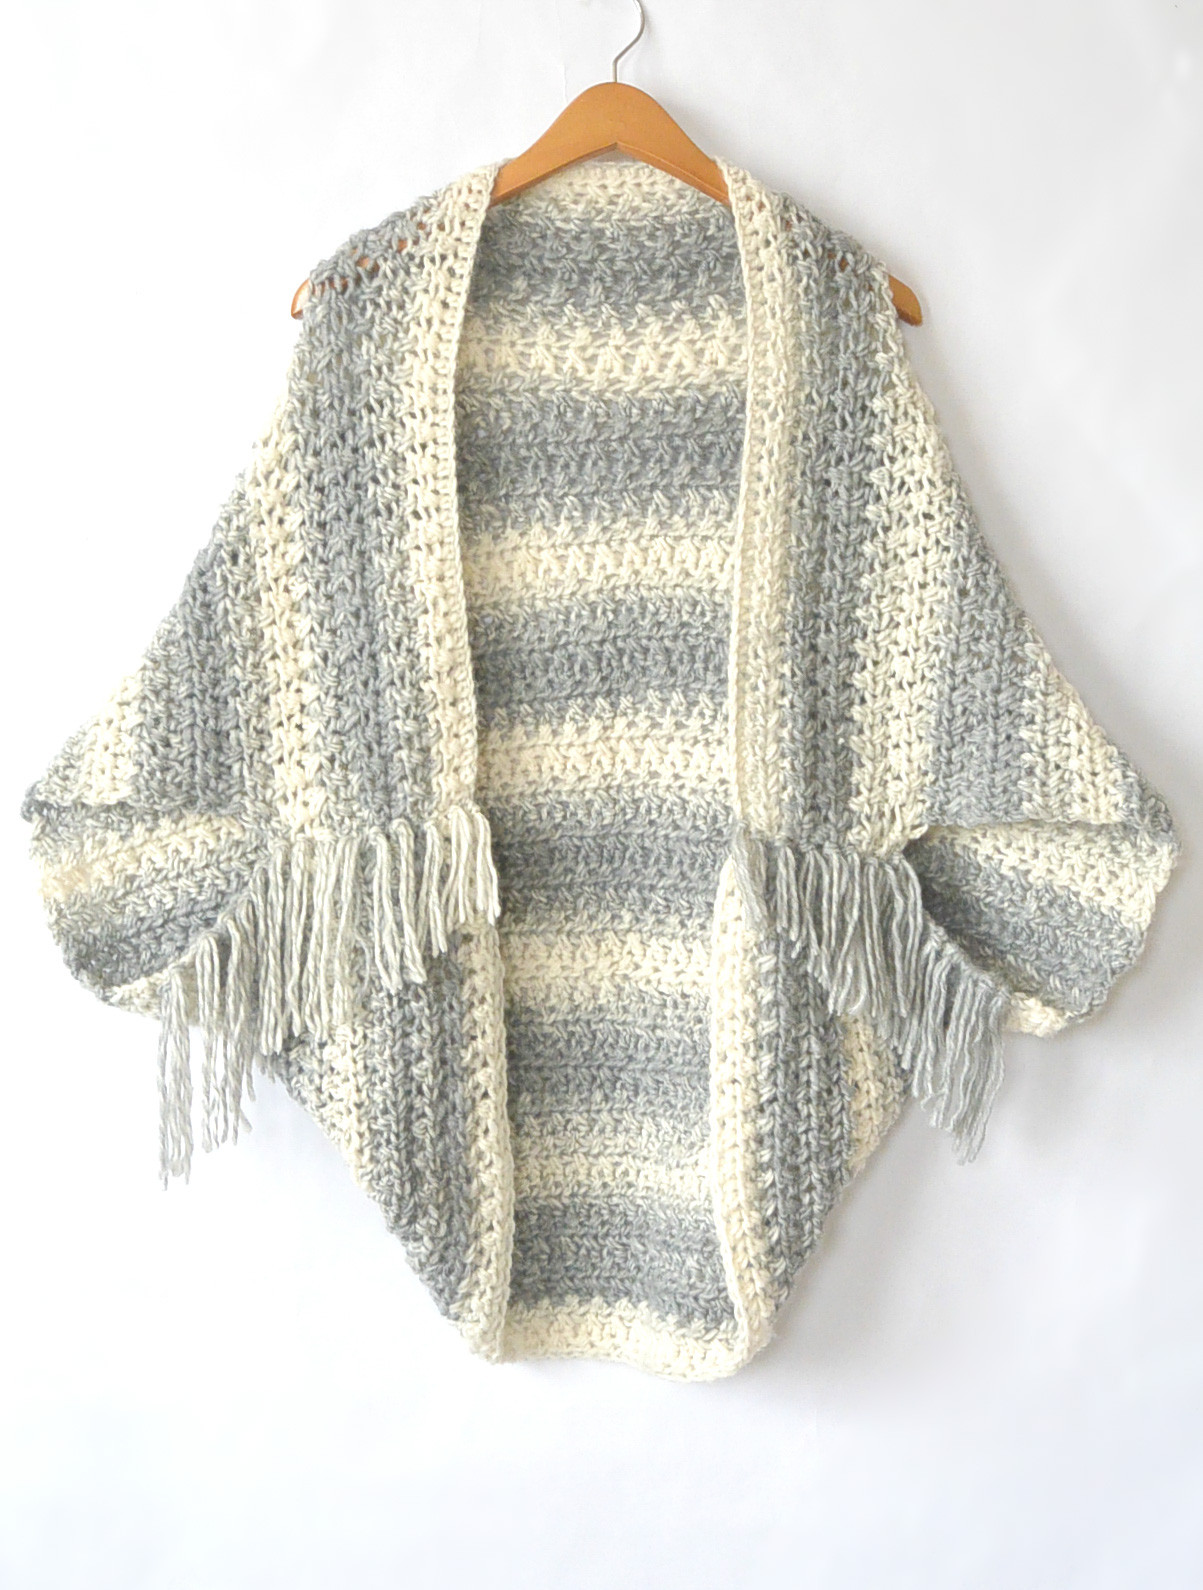 Crochet Cardigan Sweater Elegant Light Frost Easy Blanket Sweater Crochet Pattern – Mama In Of Luxury 41 Ideas Crochet Cardigan Sweater